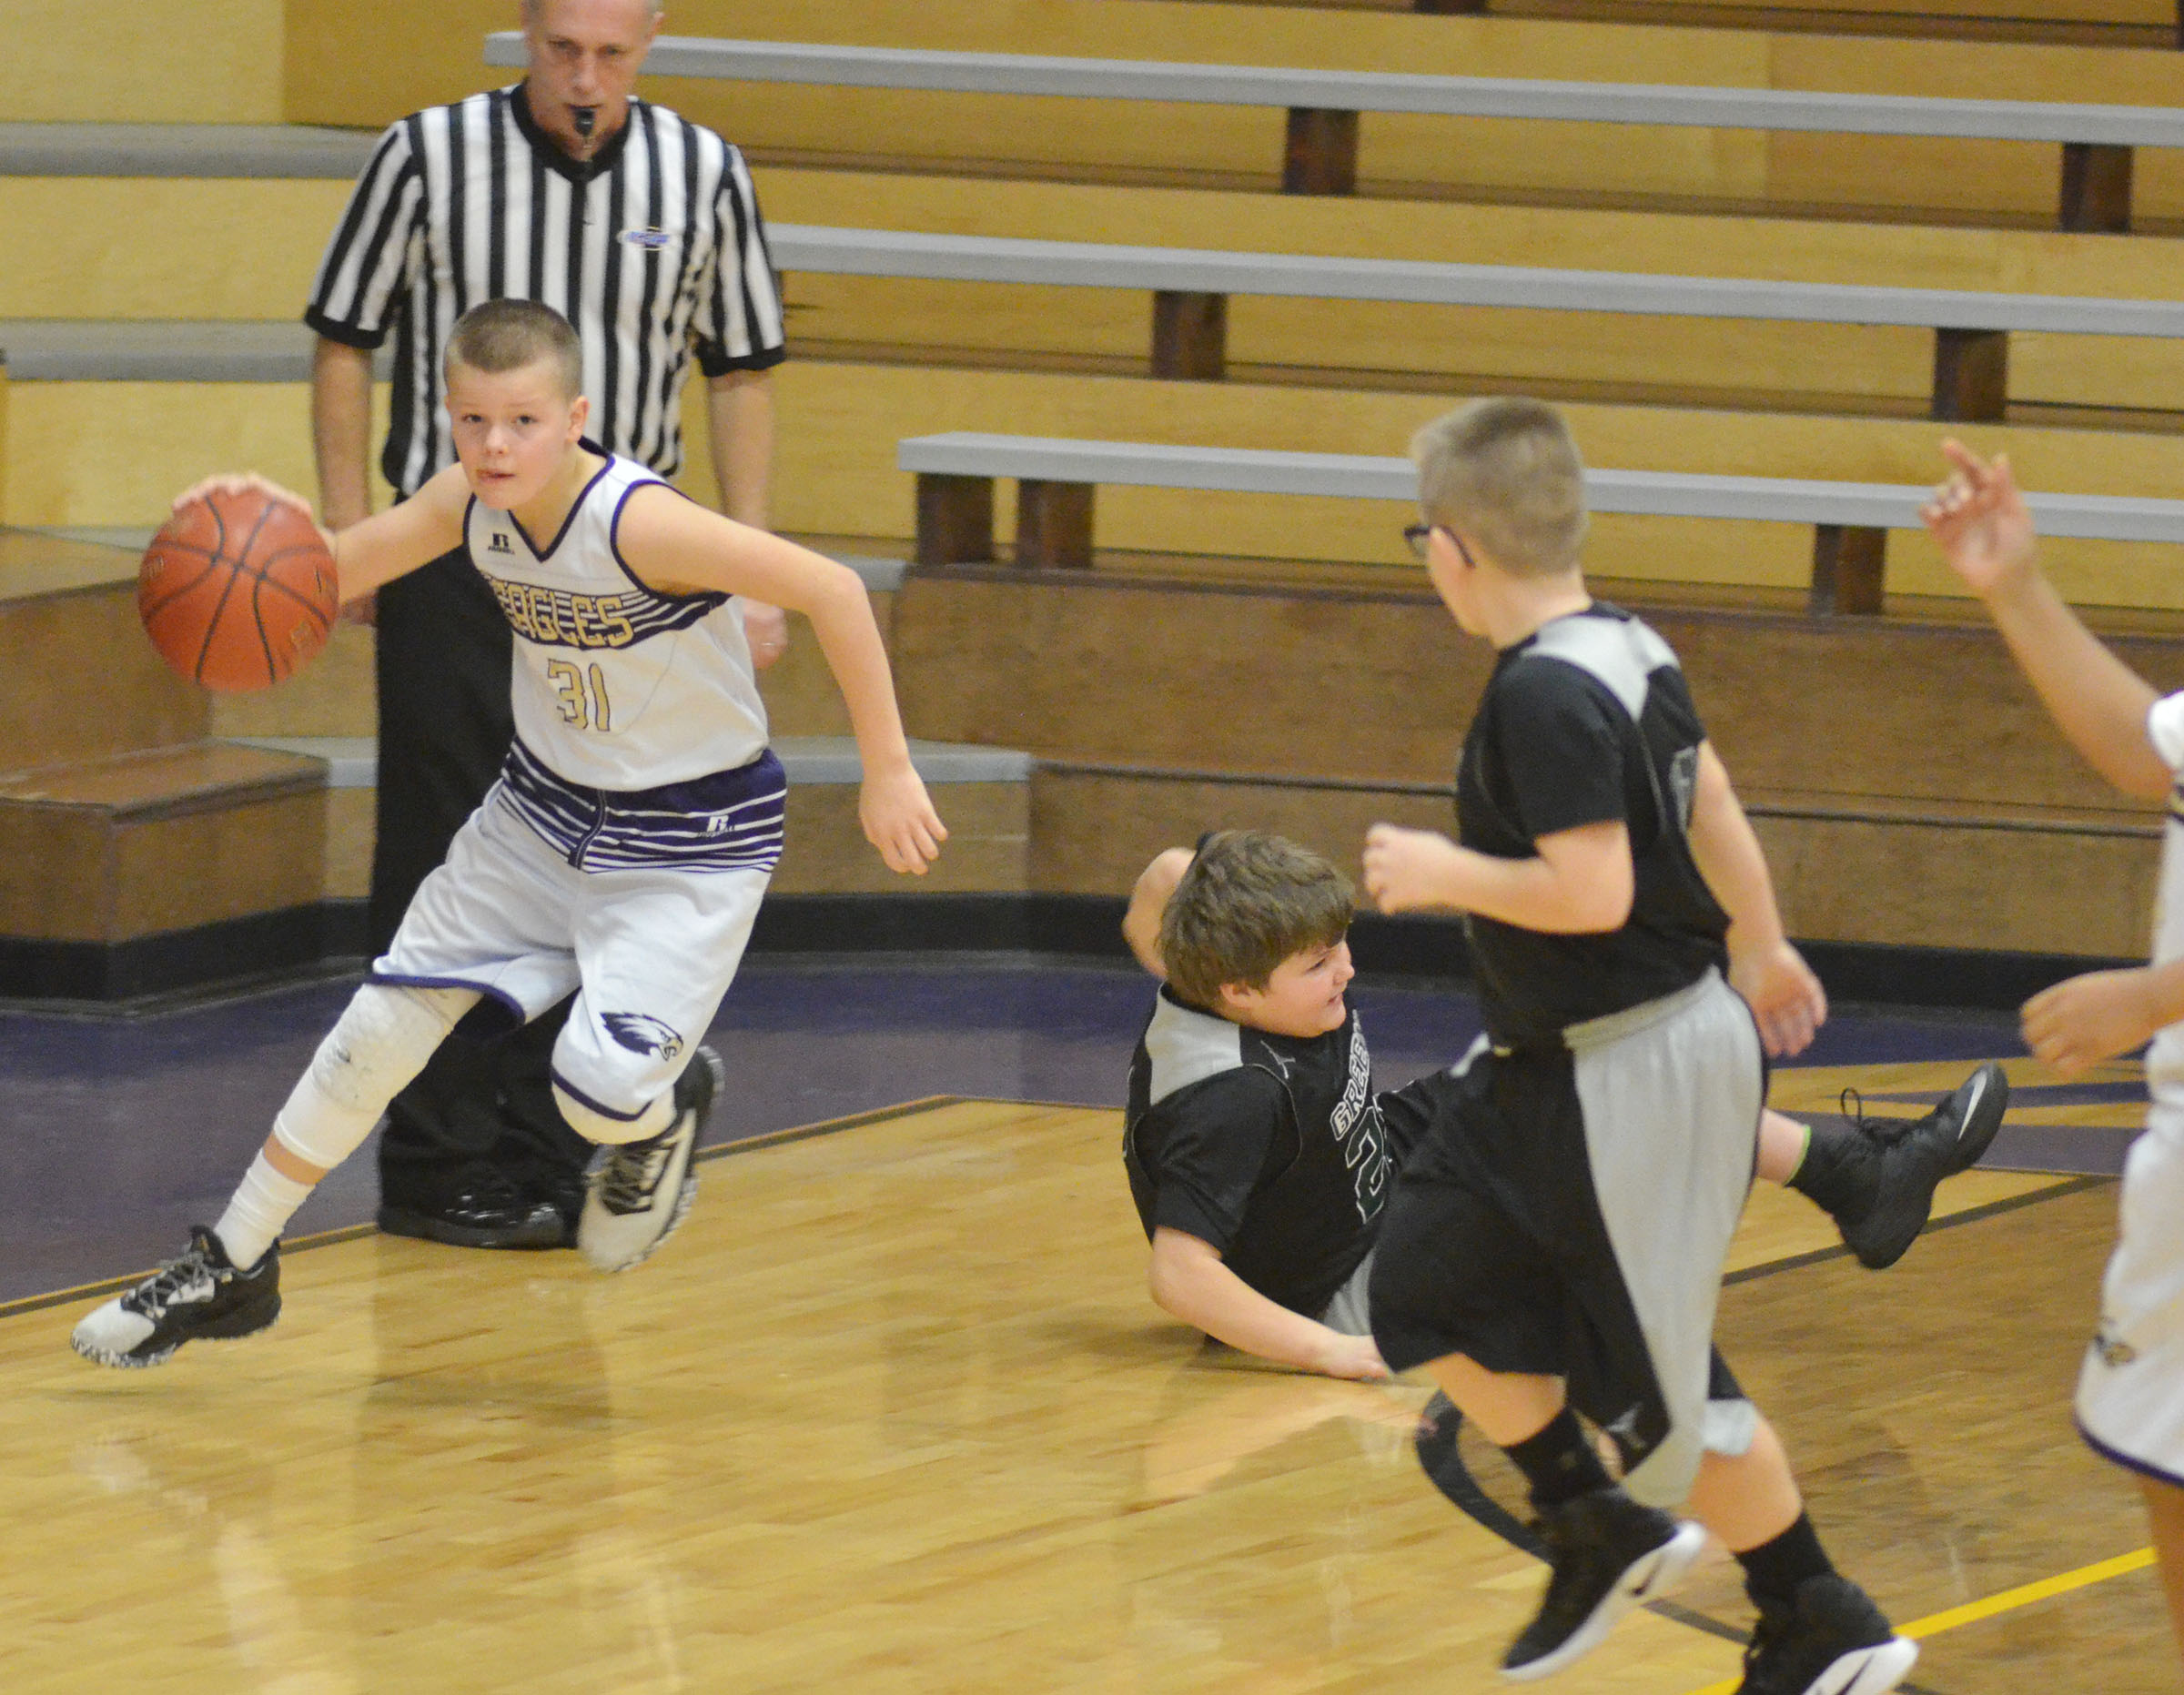 CMS sixth-grader Konner Forbis steals the ball.